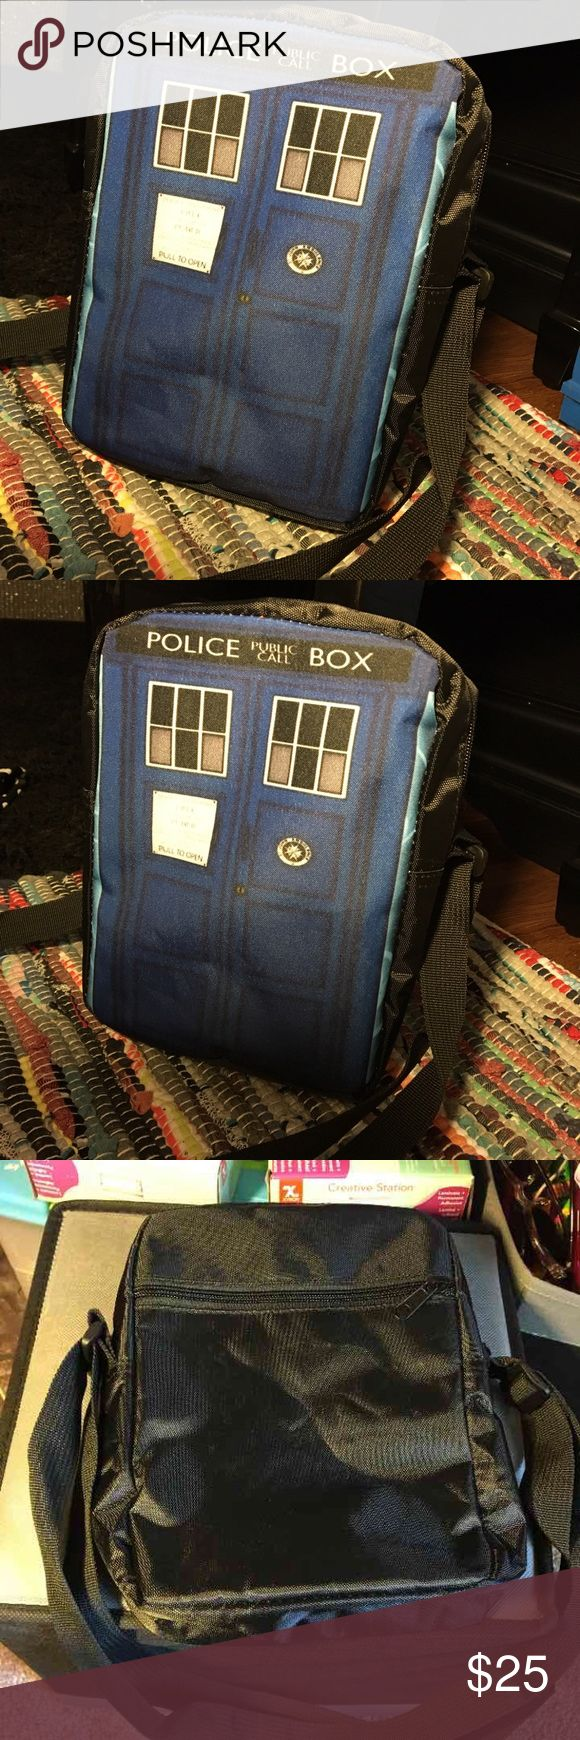 Doctor who tardis purse Band new high quality shoulder bag/ messenger bag ❤strap is adjustable (last one) ❤has one zipper pocket on the back and one open on the inside  ❤size- Length 9inches, width 6 1/2inches, depth 2 1/2inches ❤this is a unique bag so you won't be able to find this bag in any stores like hot topic hottopic, Spencer's, etc  ❤Open to reasonable offers :) ❤have any questions? Feel free to ask! :) Tags~ 10th doctor 11TH doctor David tennant Matt smith adipose trust me I'm the…